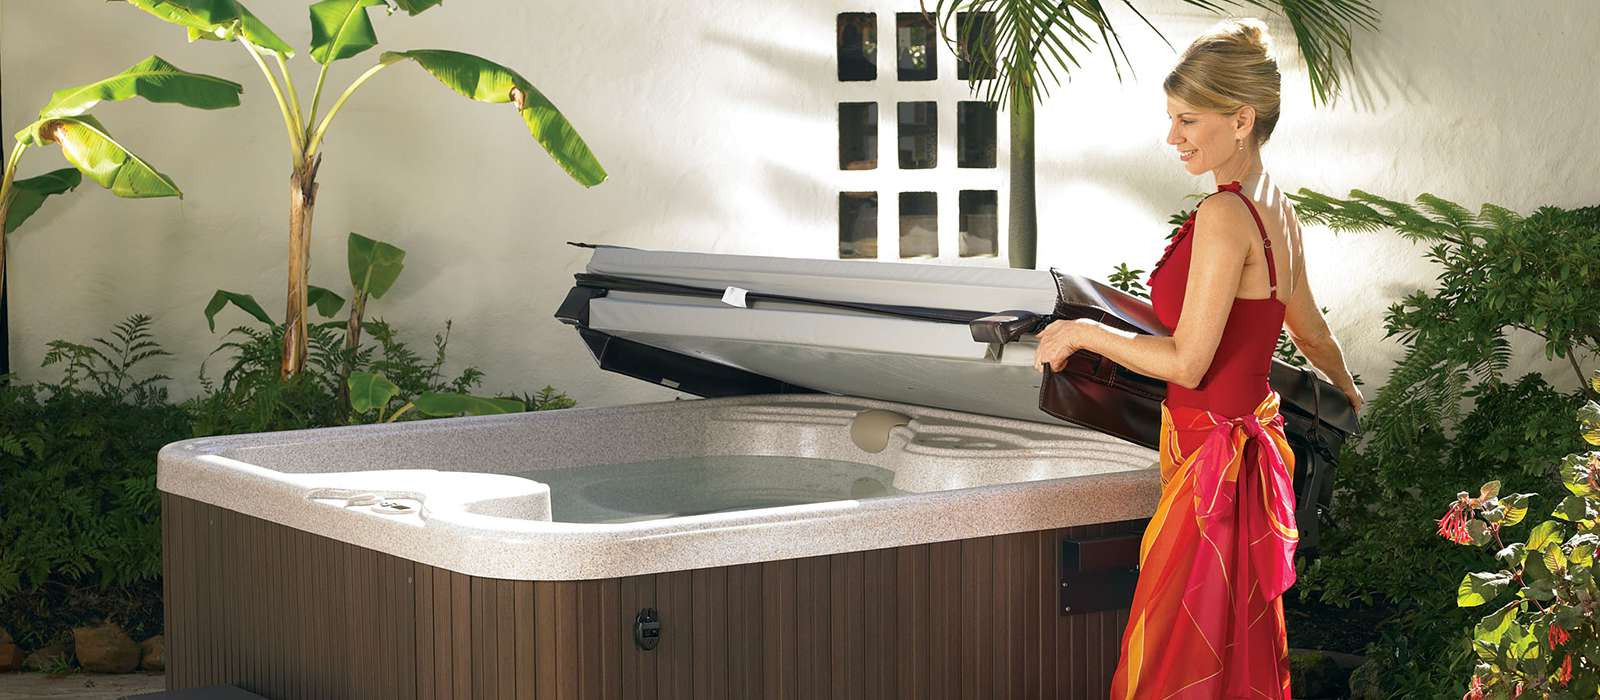 Small hot tubs pros and cons best hot tubs spas for Uniform swimming pool spa and hot tub code 2012 edition